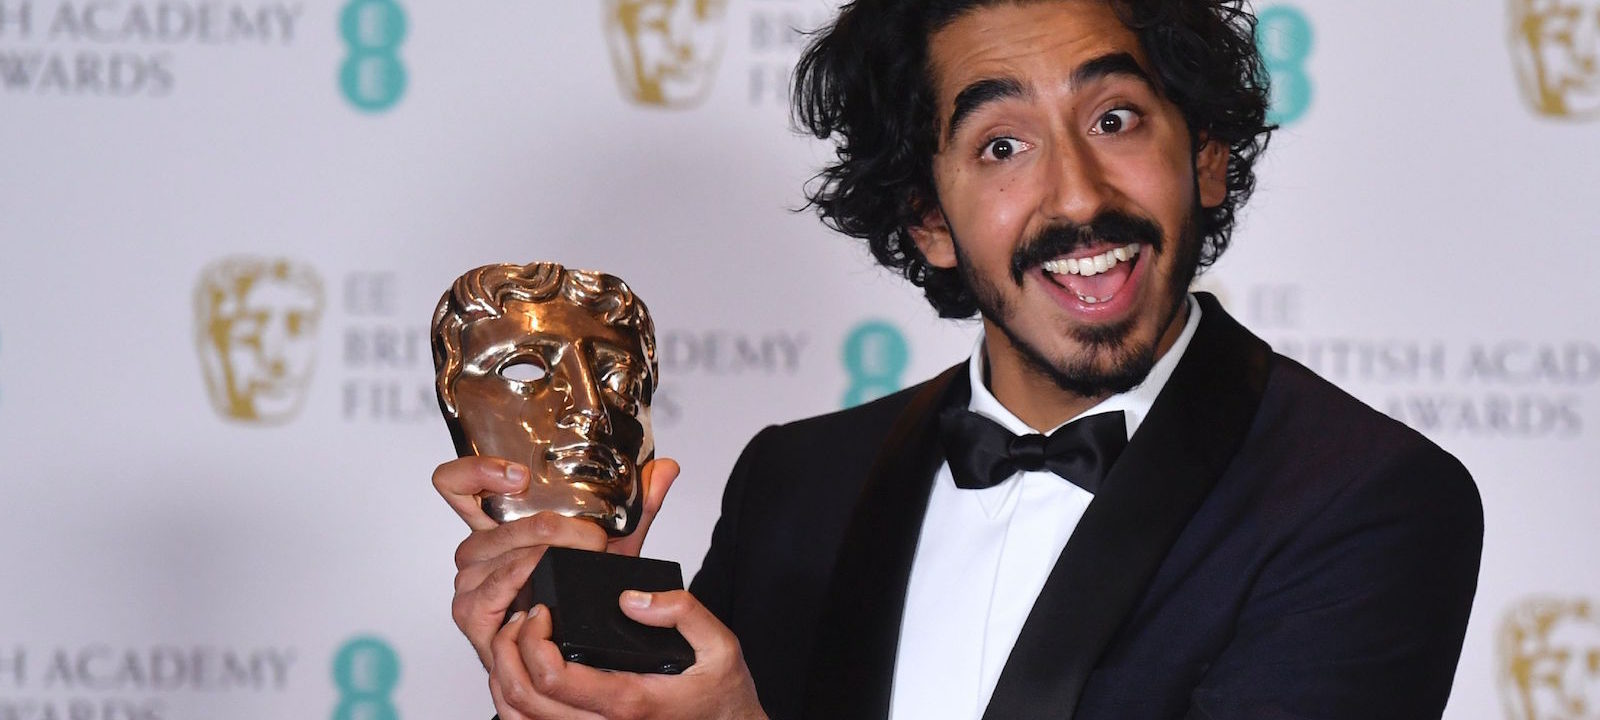 British actor Dev Patel poses with the award for a Supporting Actor for his work on the film 'Lion' at the BAFTA British Academy Film Awards at the Royal Albert Hall in London on February 12, 2017.